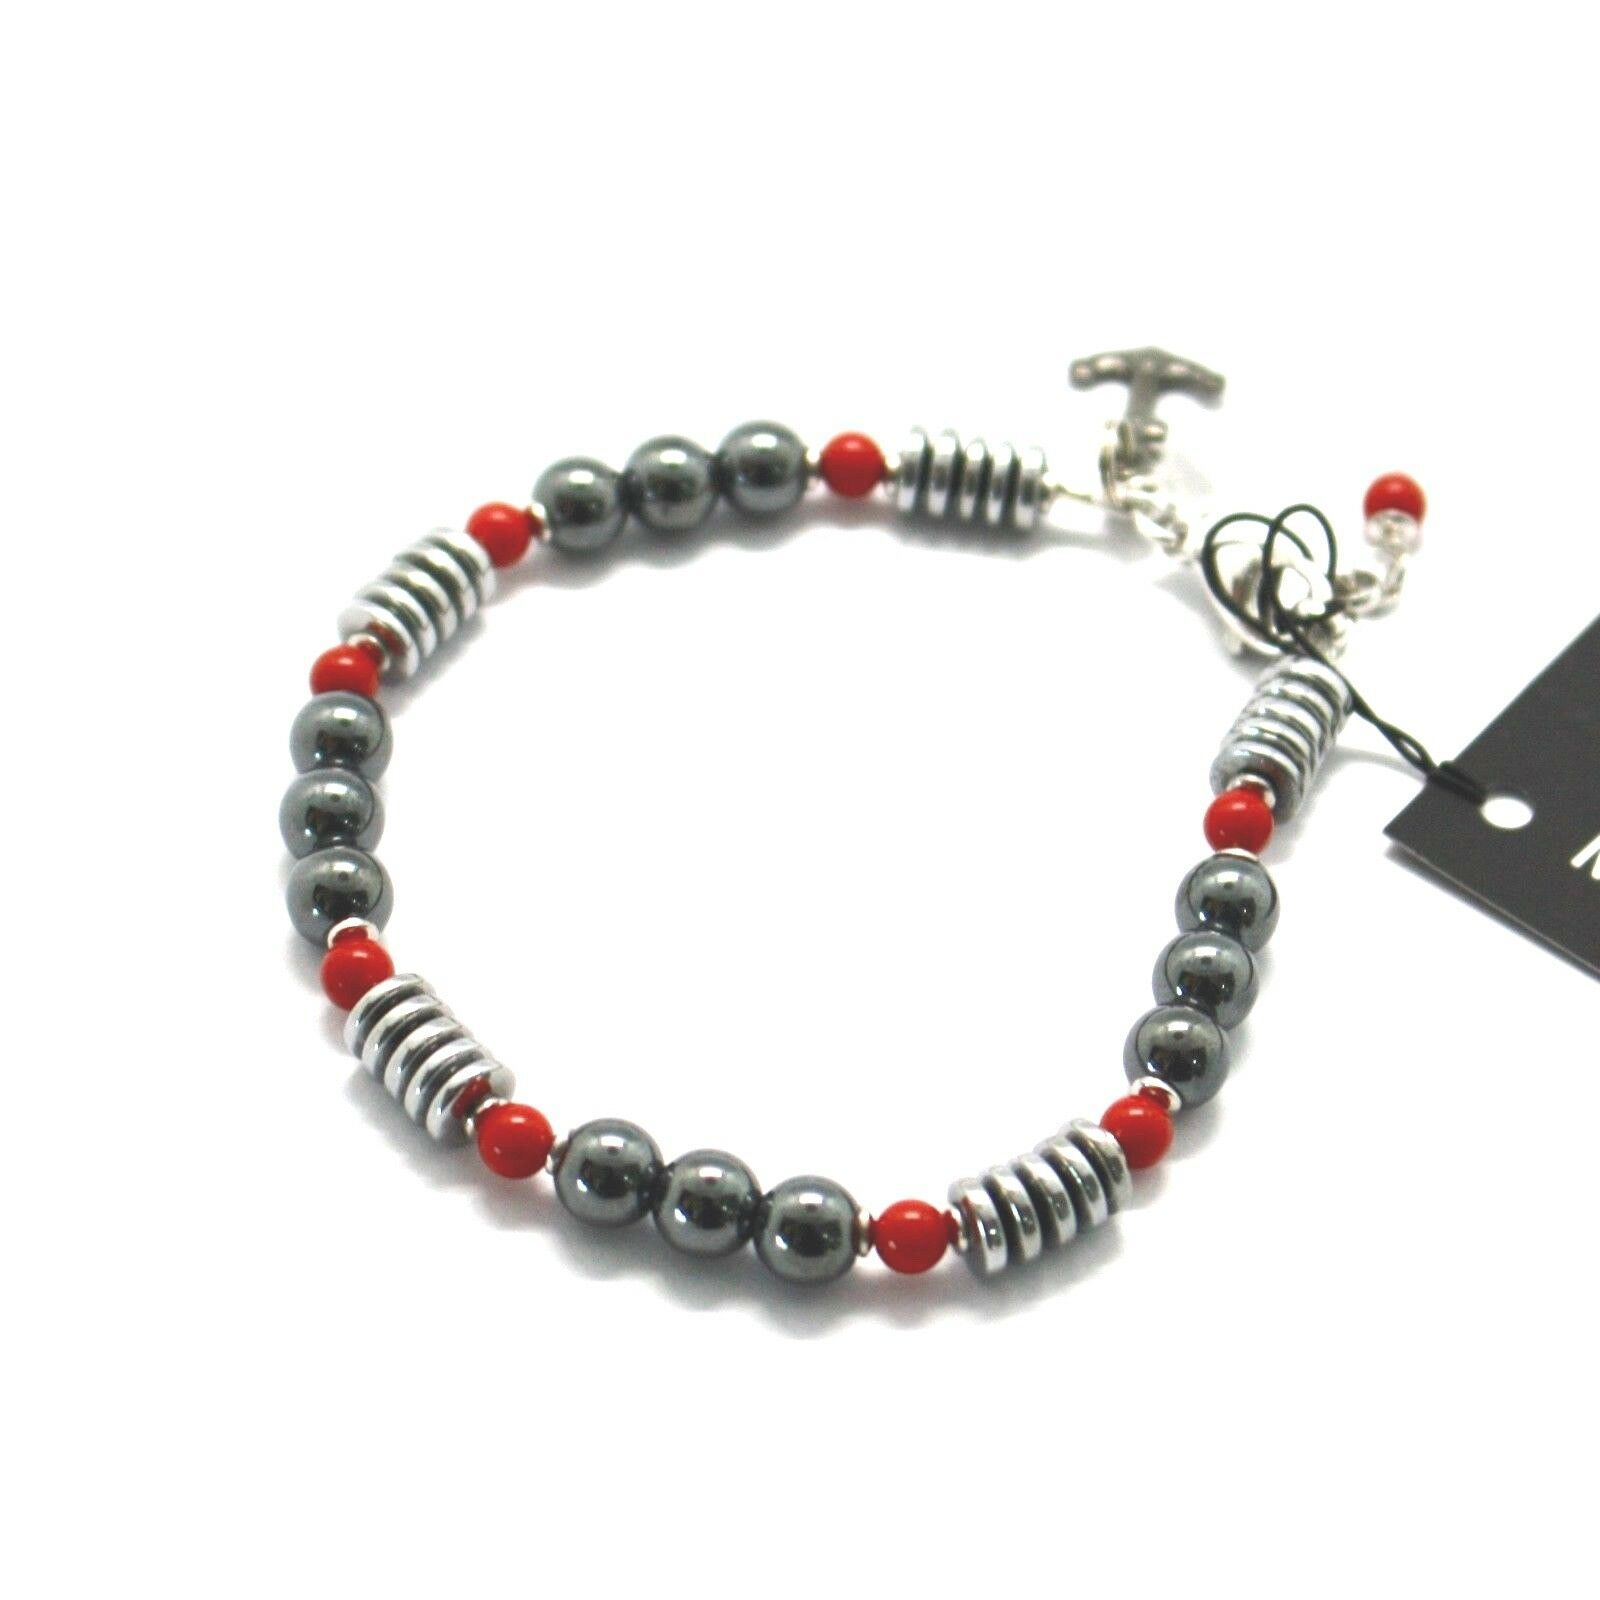 Silver Bracelet 925 With Coral And Hematite BLE-3 Made IN Italy By MASCHIA